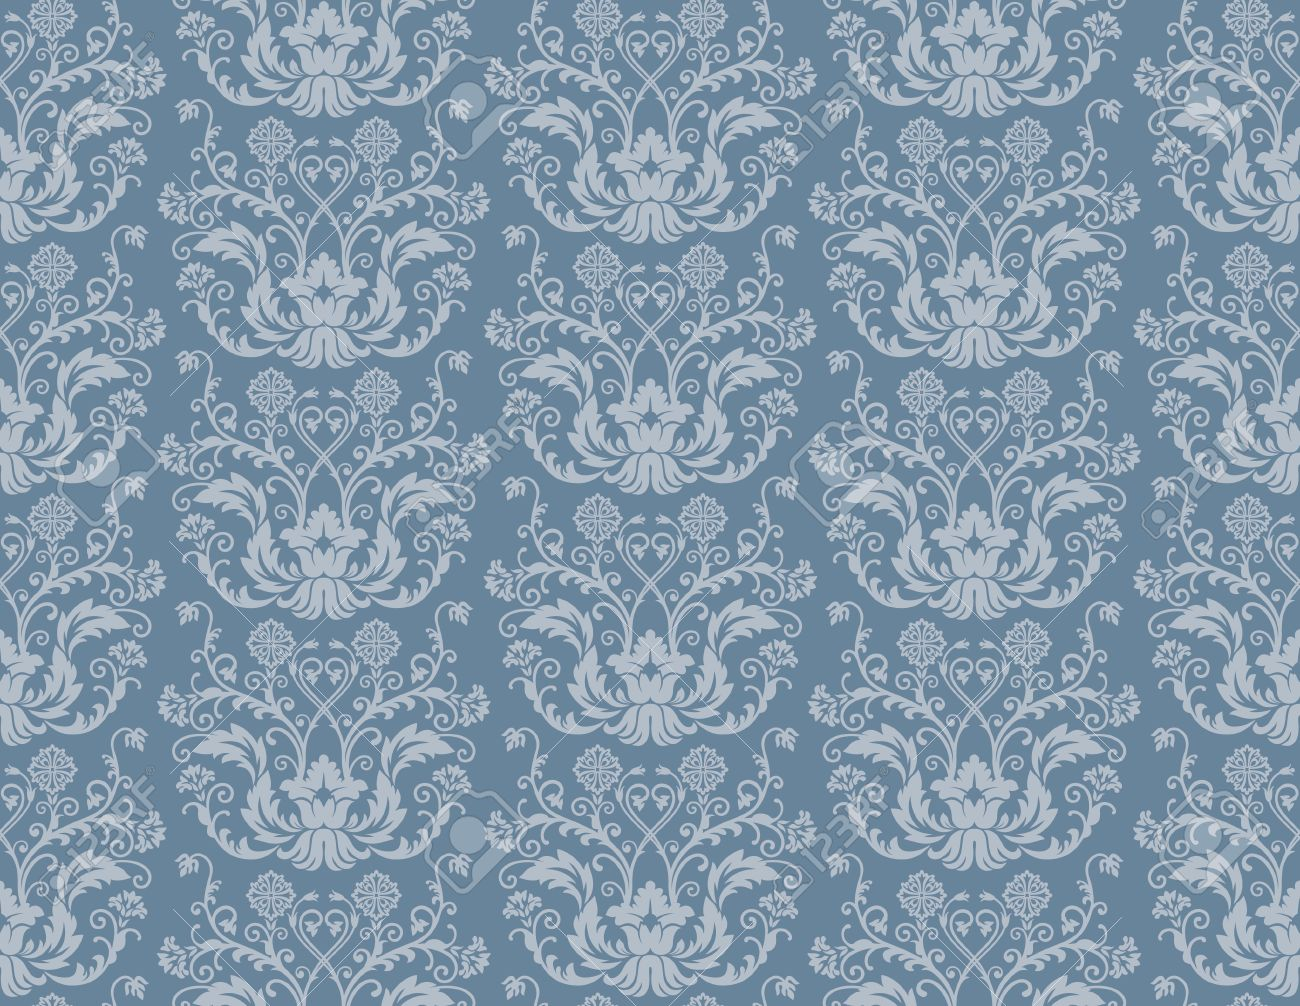 Seamless Blue Floral Damask Wallpaper Royalty Free Cliparts